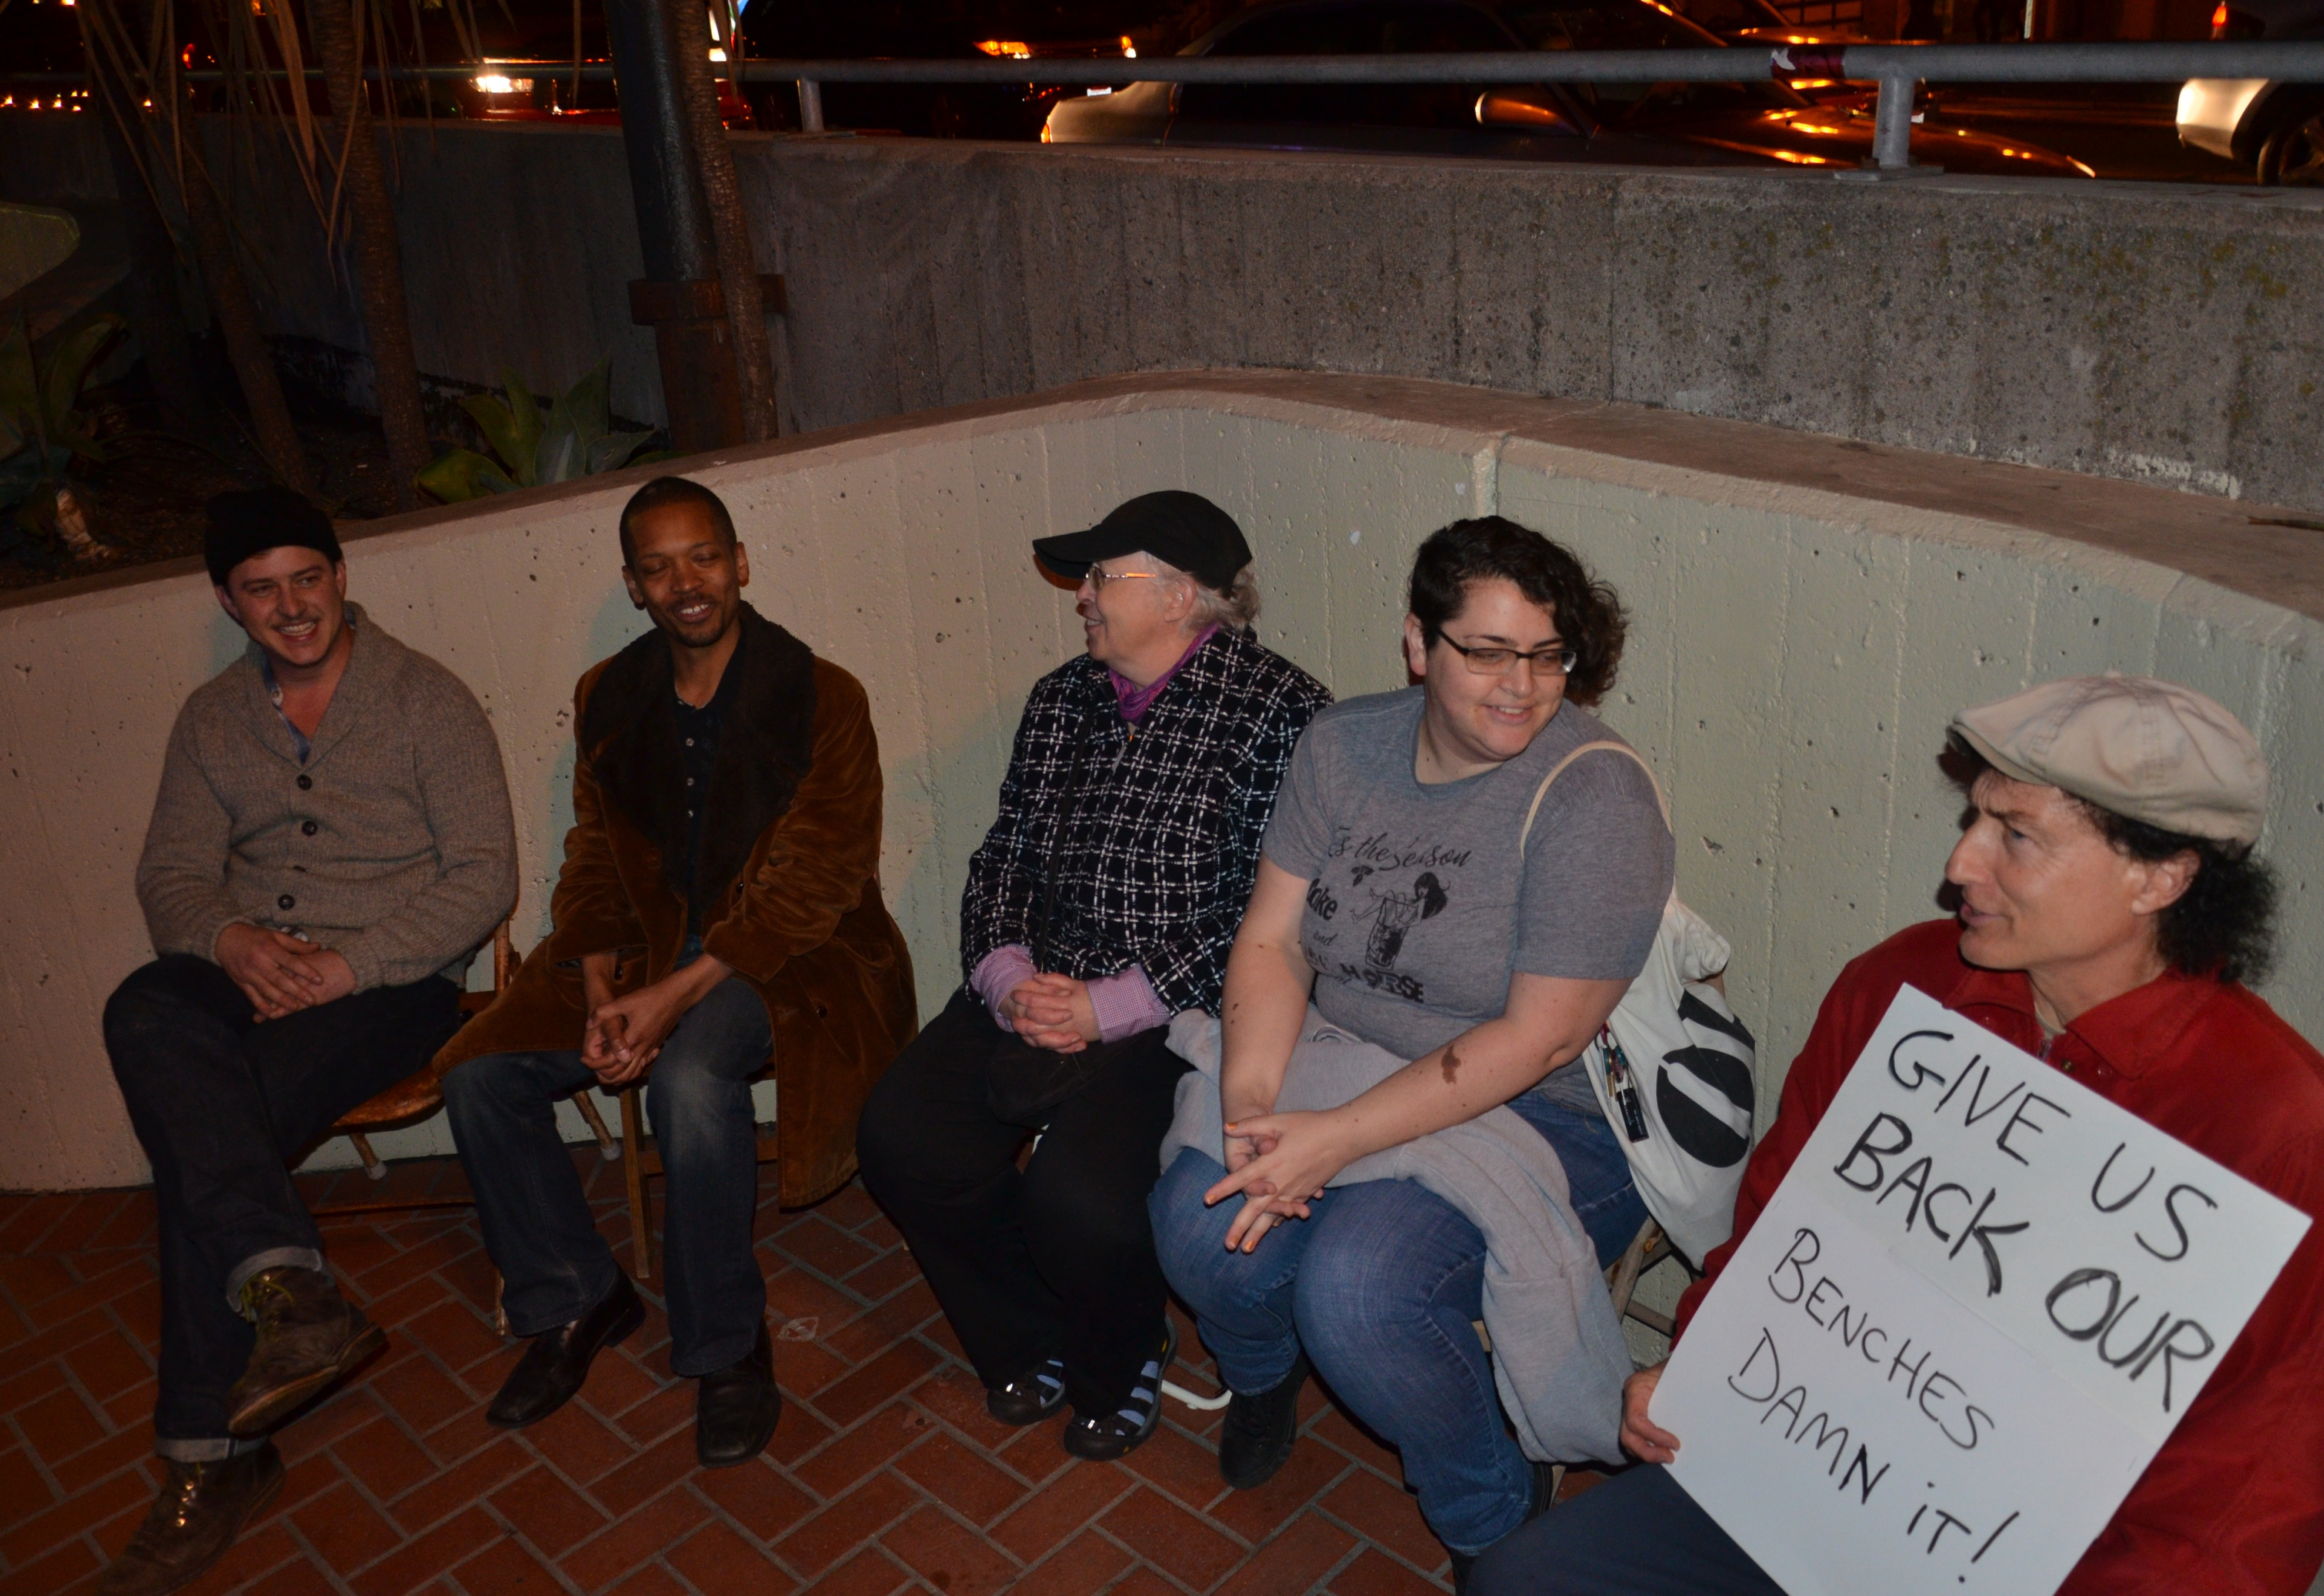 Give us back our benches - Candlelight memorial for Harvey Milk